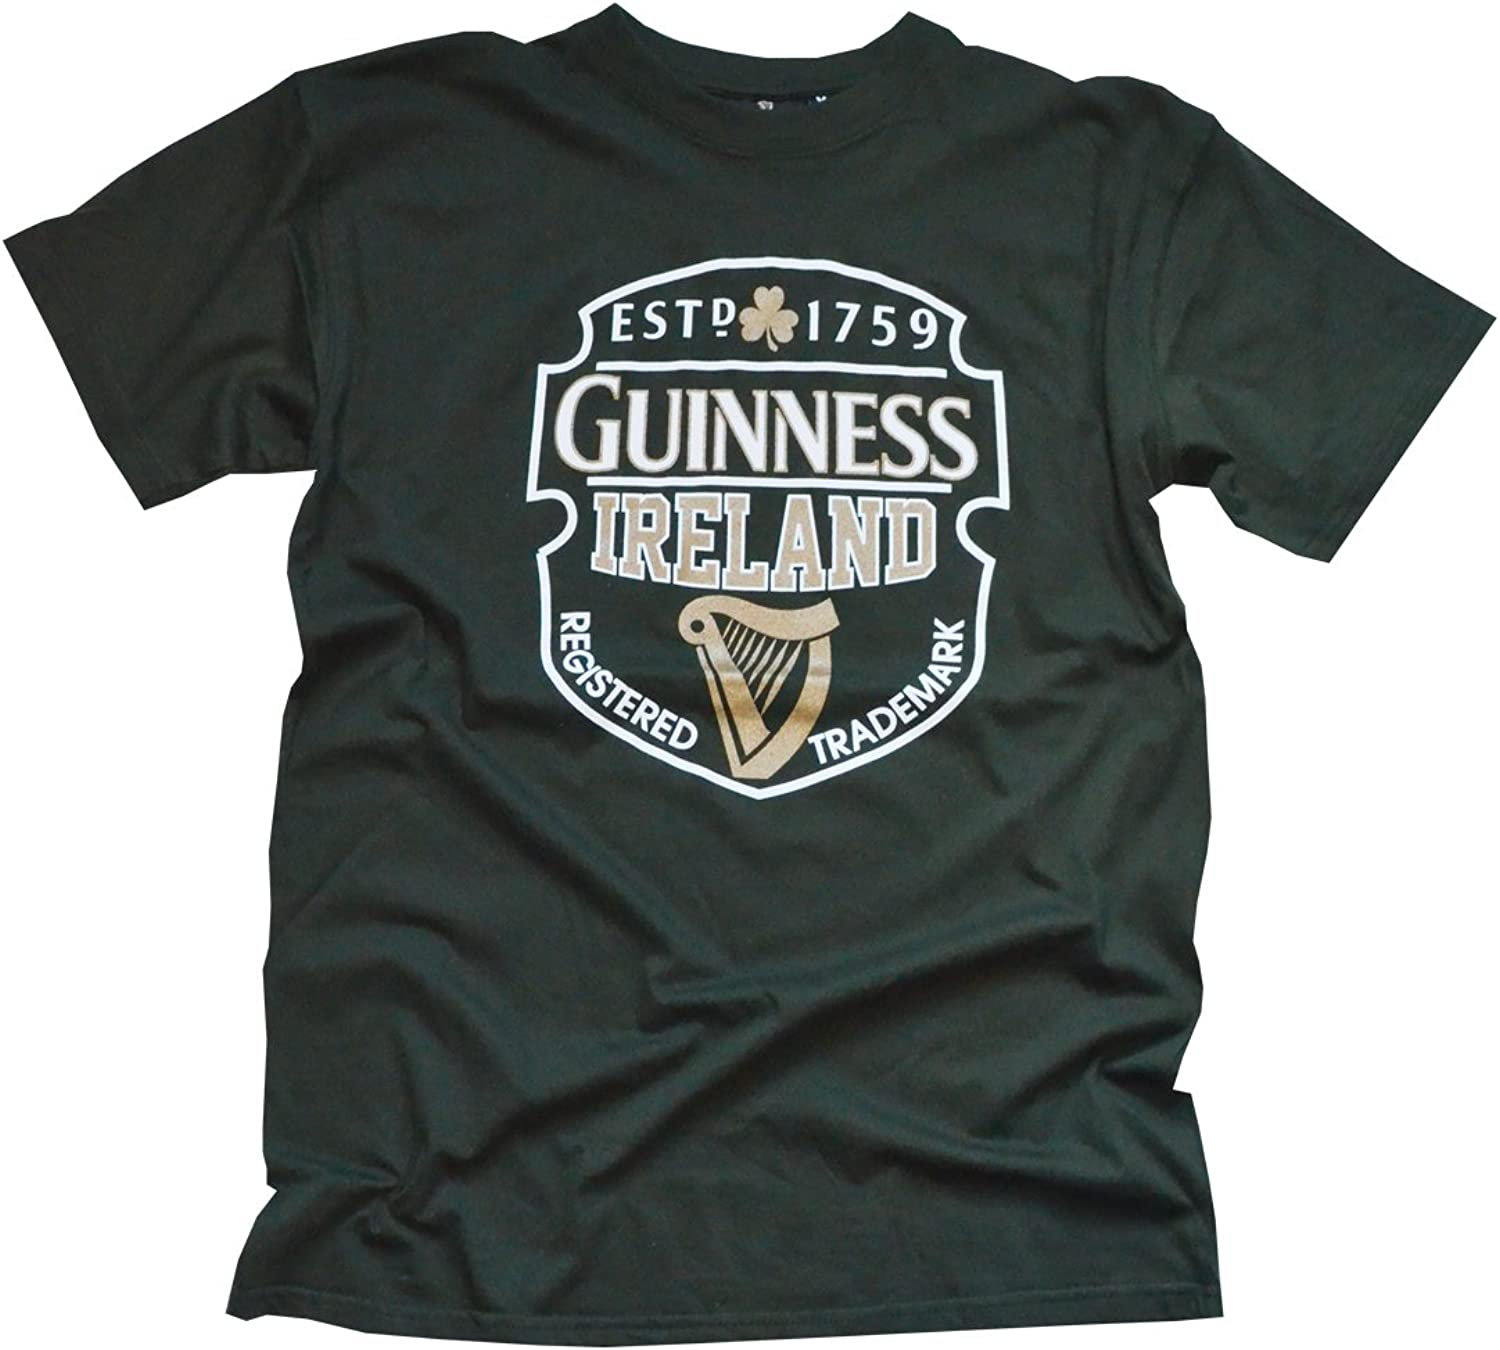 dc11ec6a9bc8 Bottle Green Harp TShirt Guinness Ireland nuqowi5612-Sporting goods ...